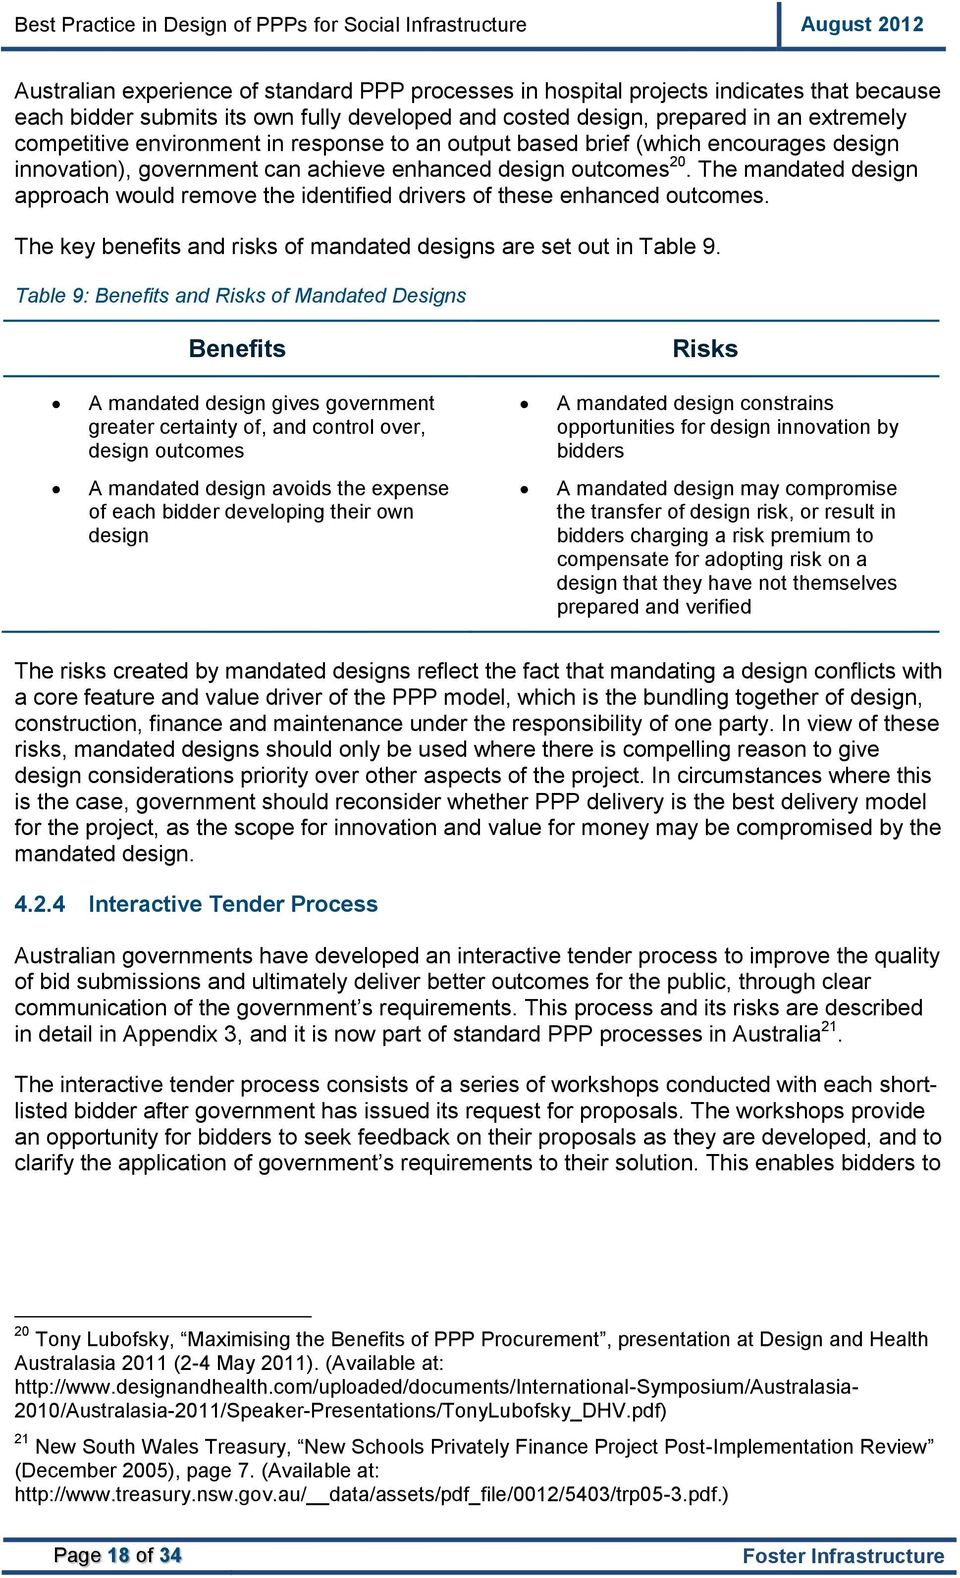 The mandated design approach would remove the identified drivers of these enhanced outcomes. The key benefits and risks of mandated designs are set out in Table 9.